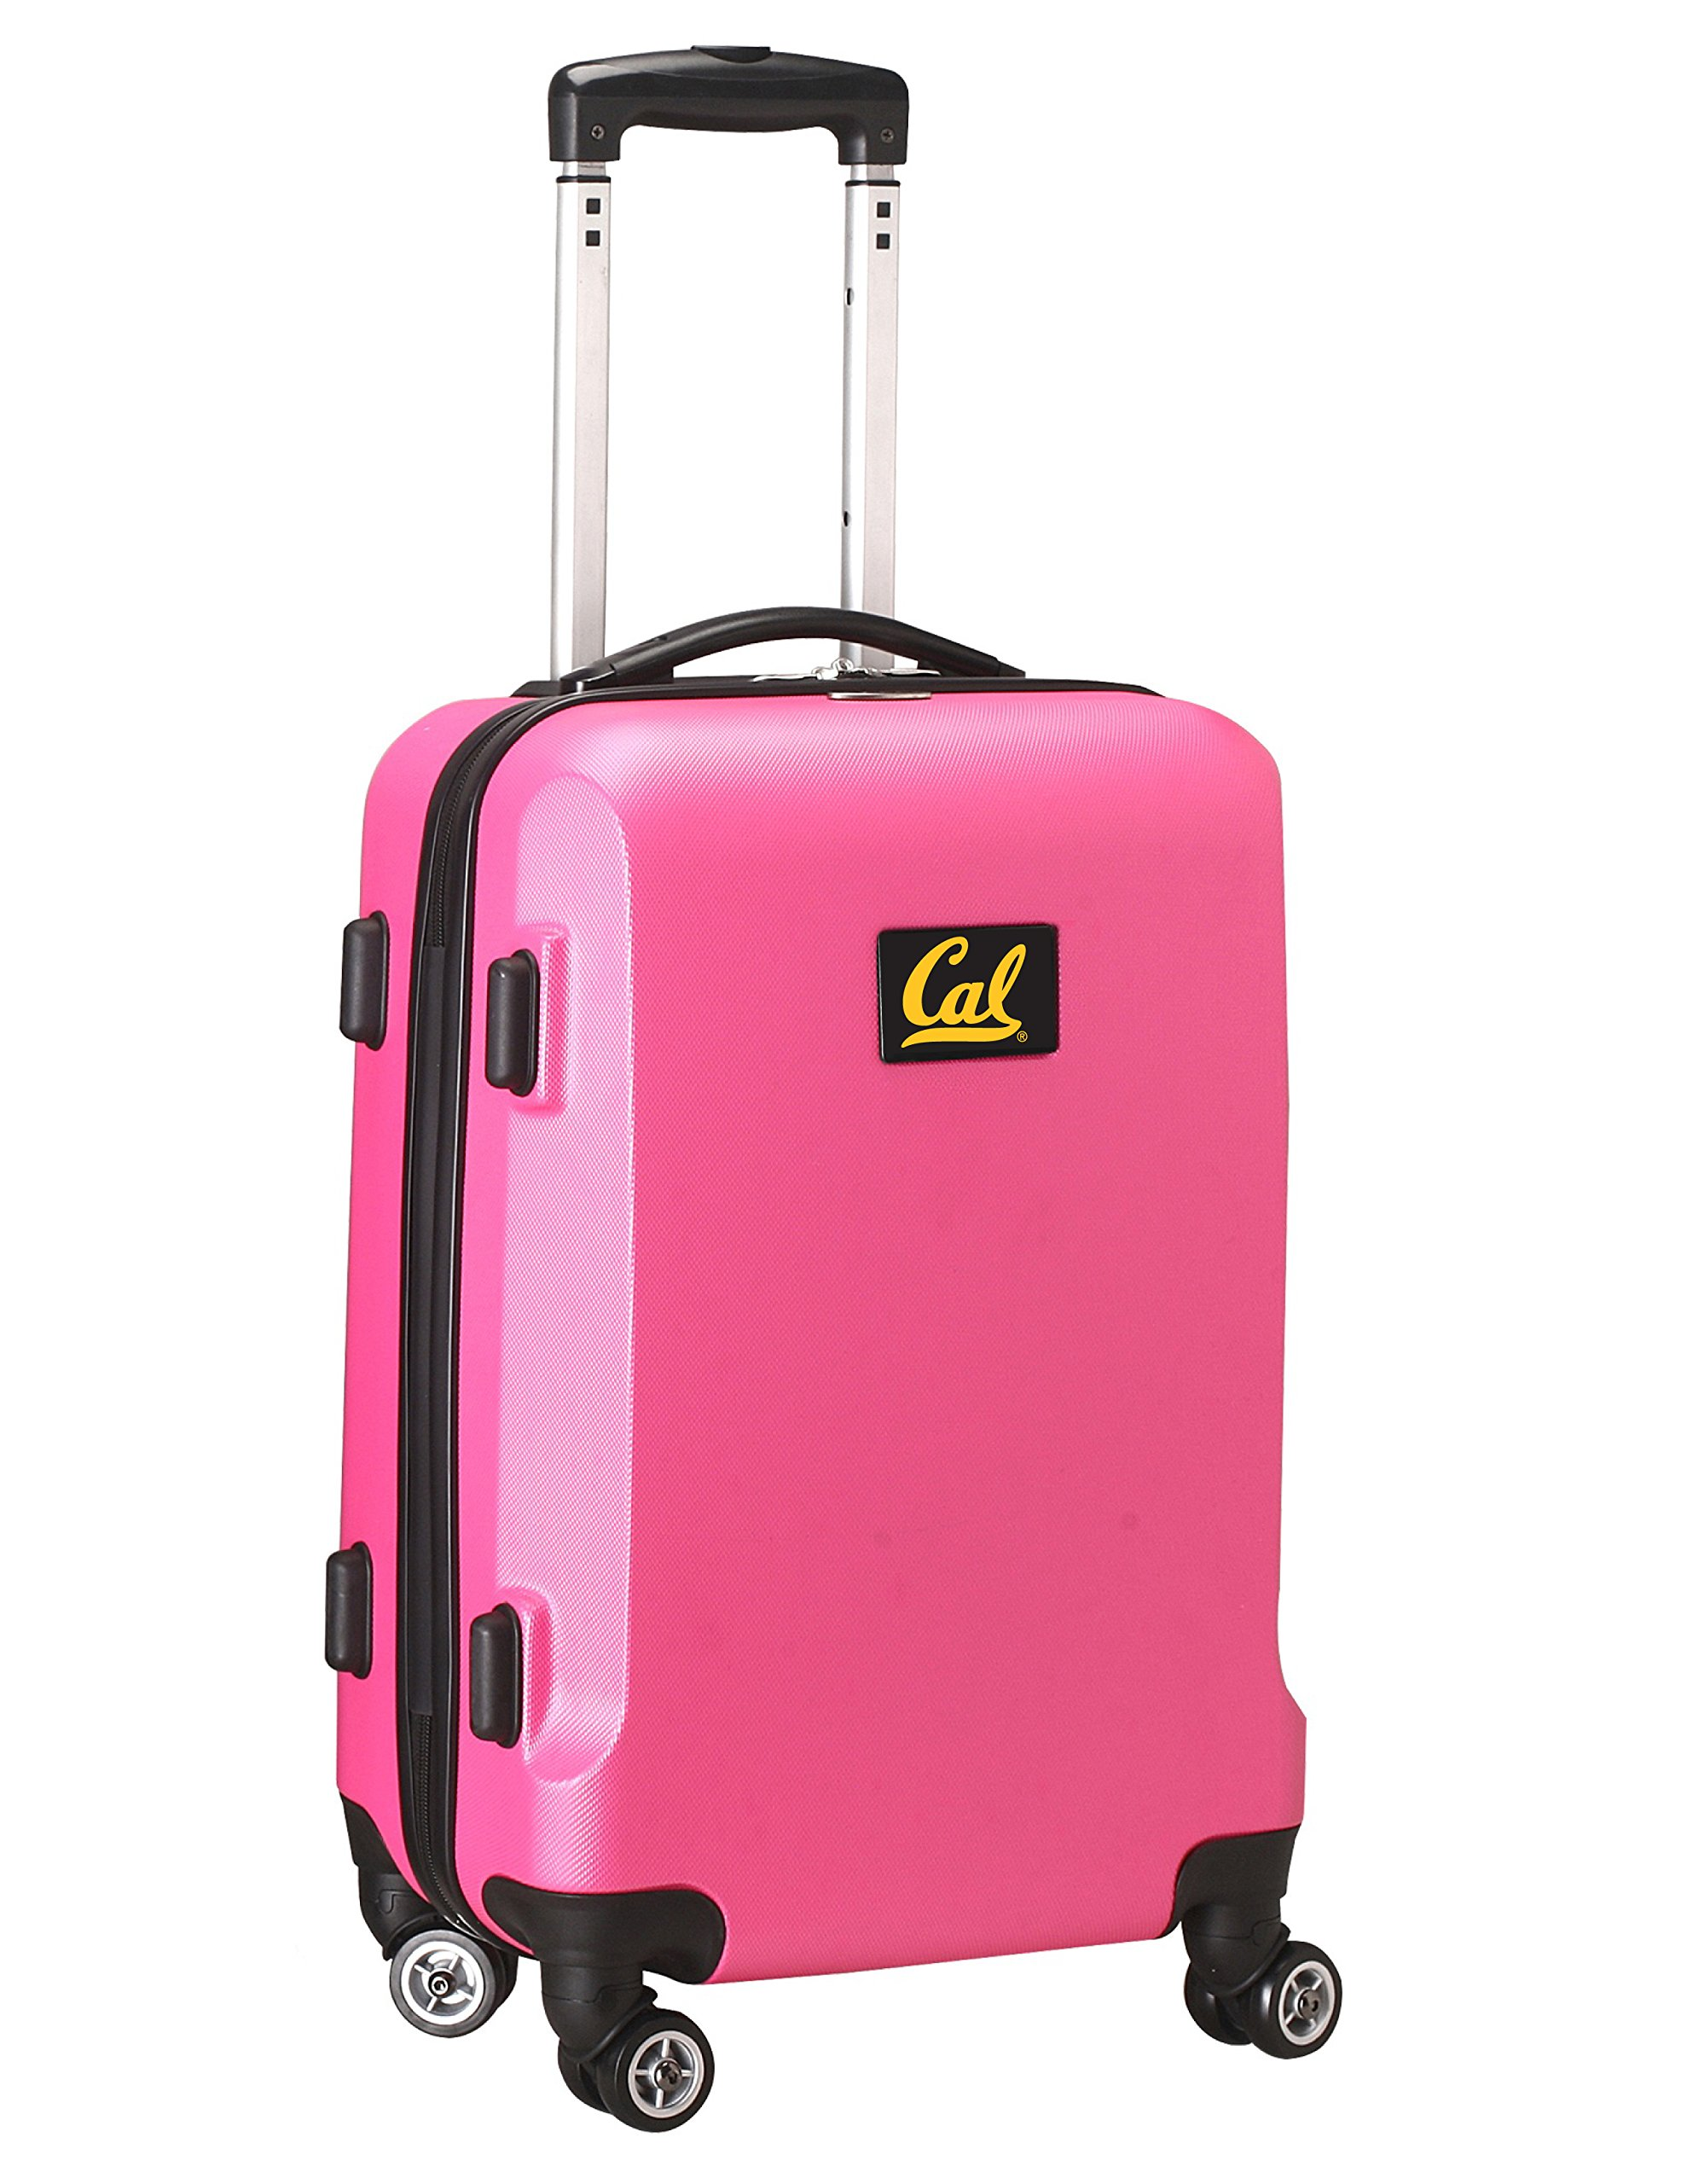 Denco NCAA California Golden Bears Carry-On Hardcase Luggage Spinner, Pink